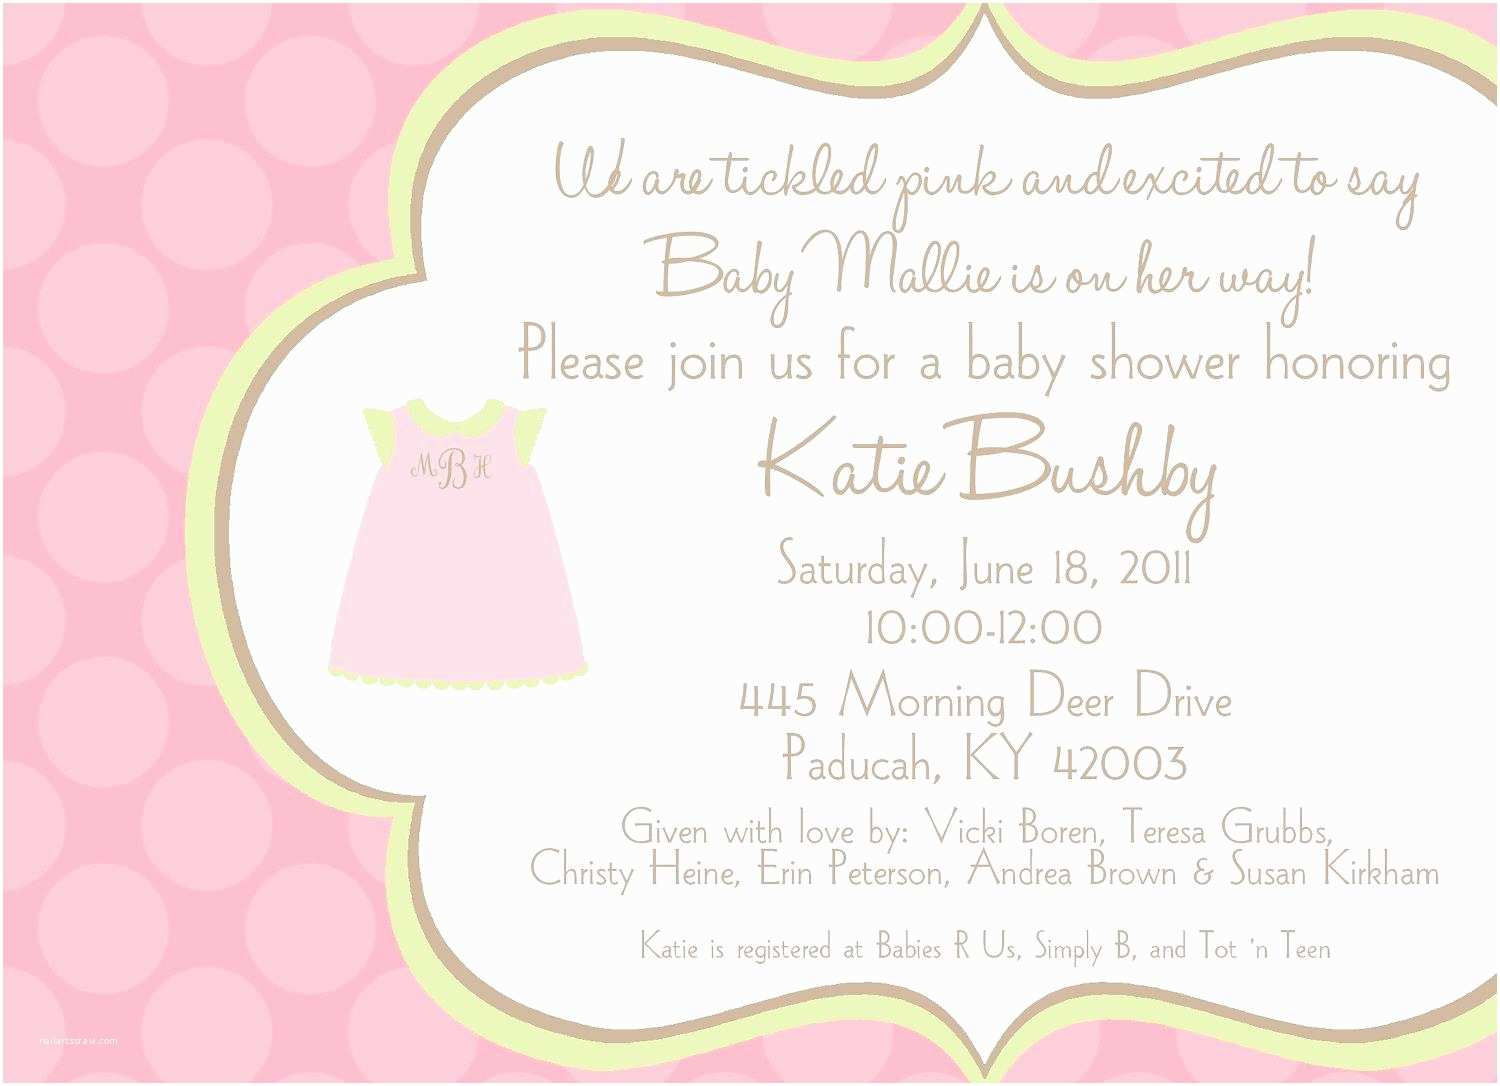 Baby Shower Invitation Wording for A Boy Baby Shower Invitation Wording for A Girl